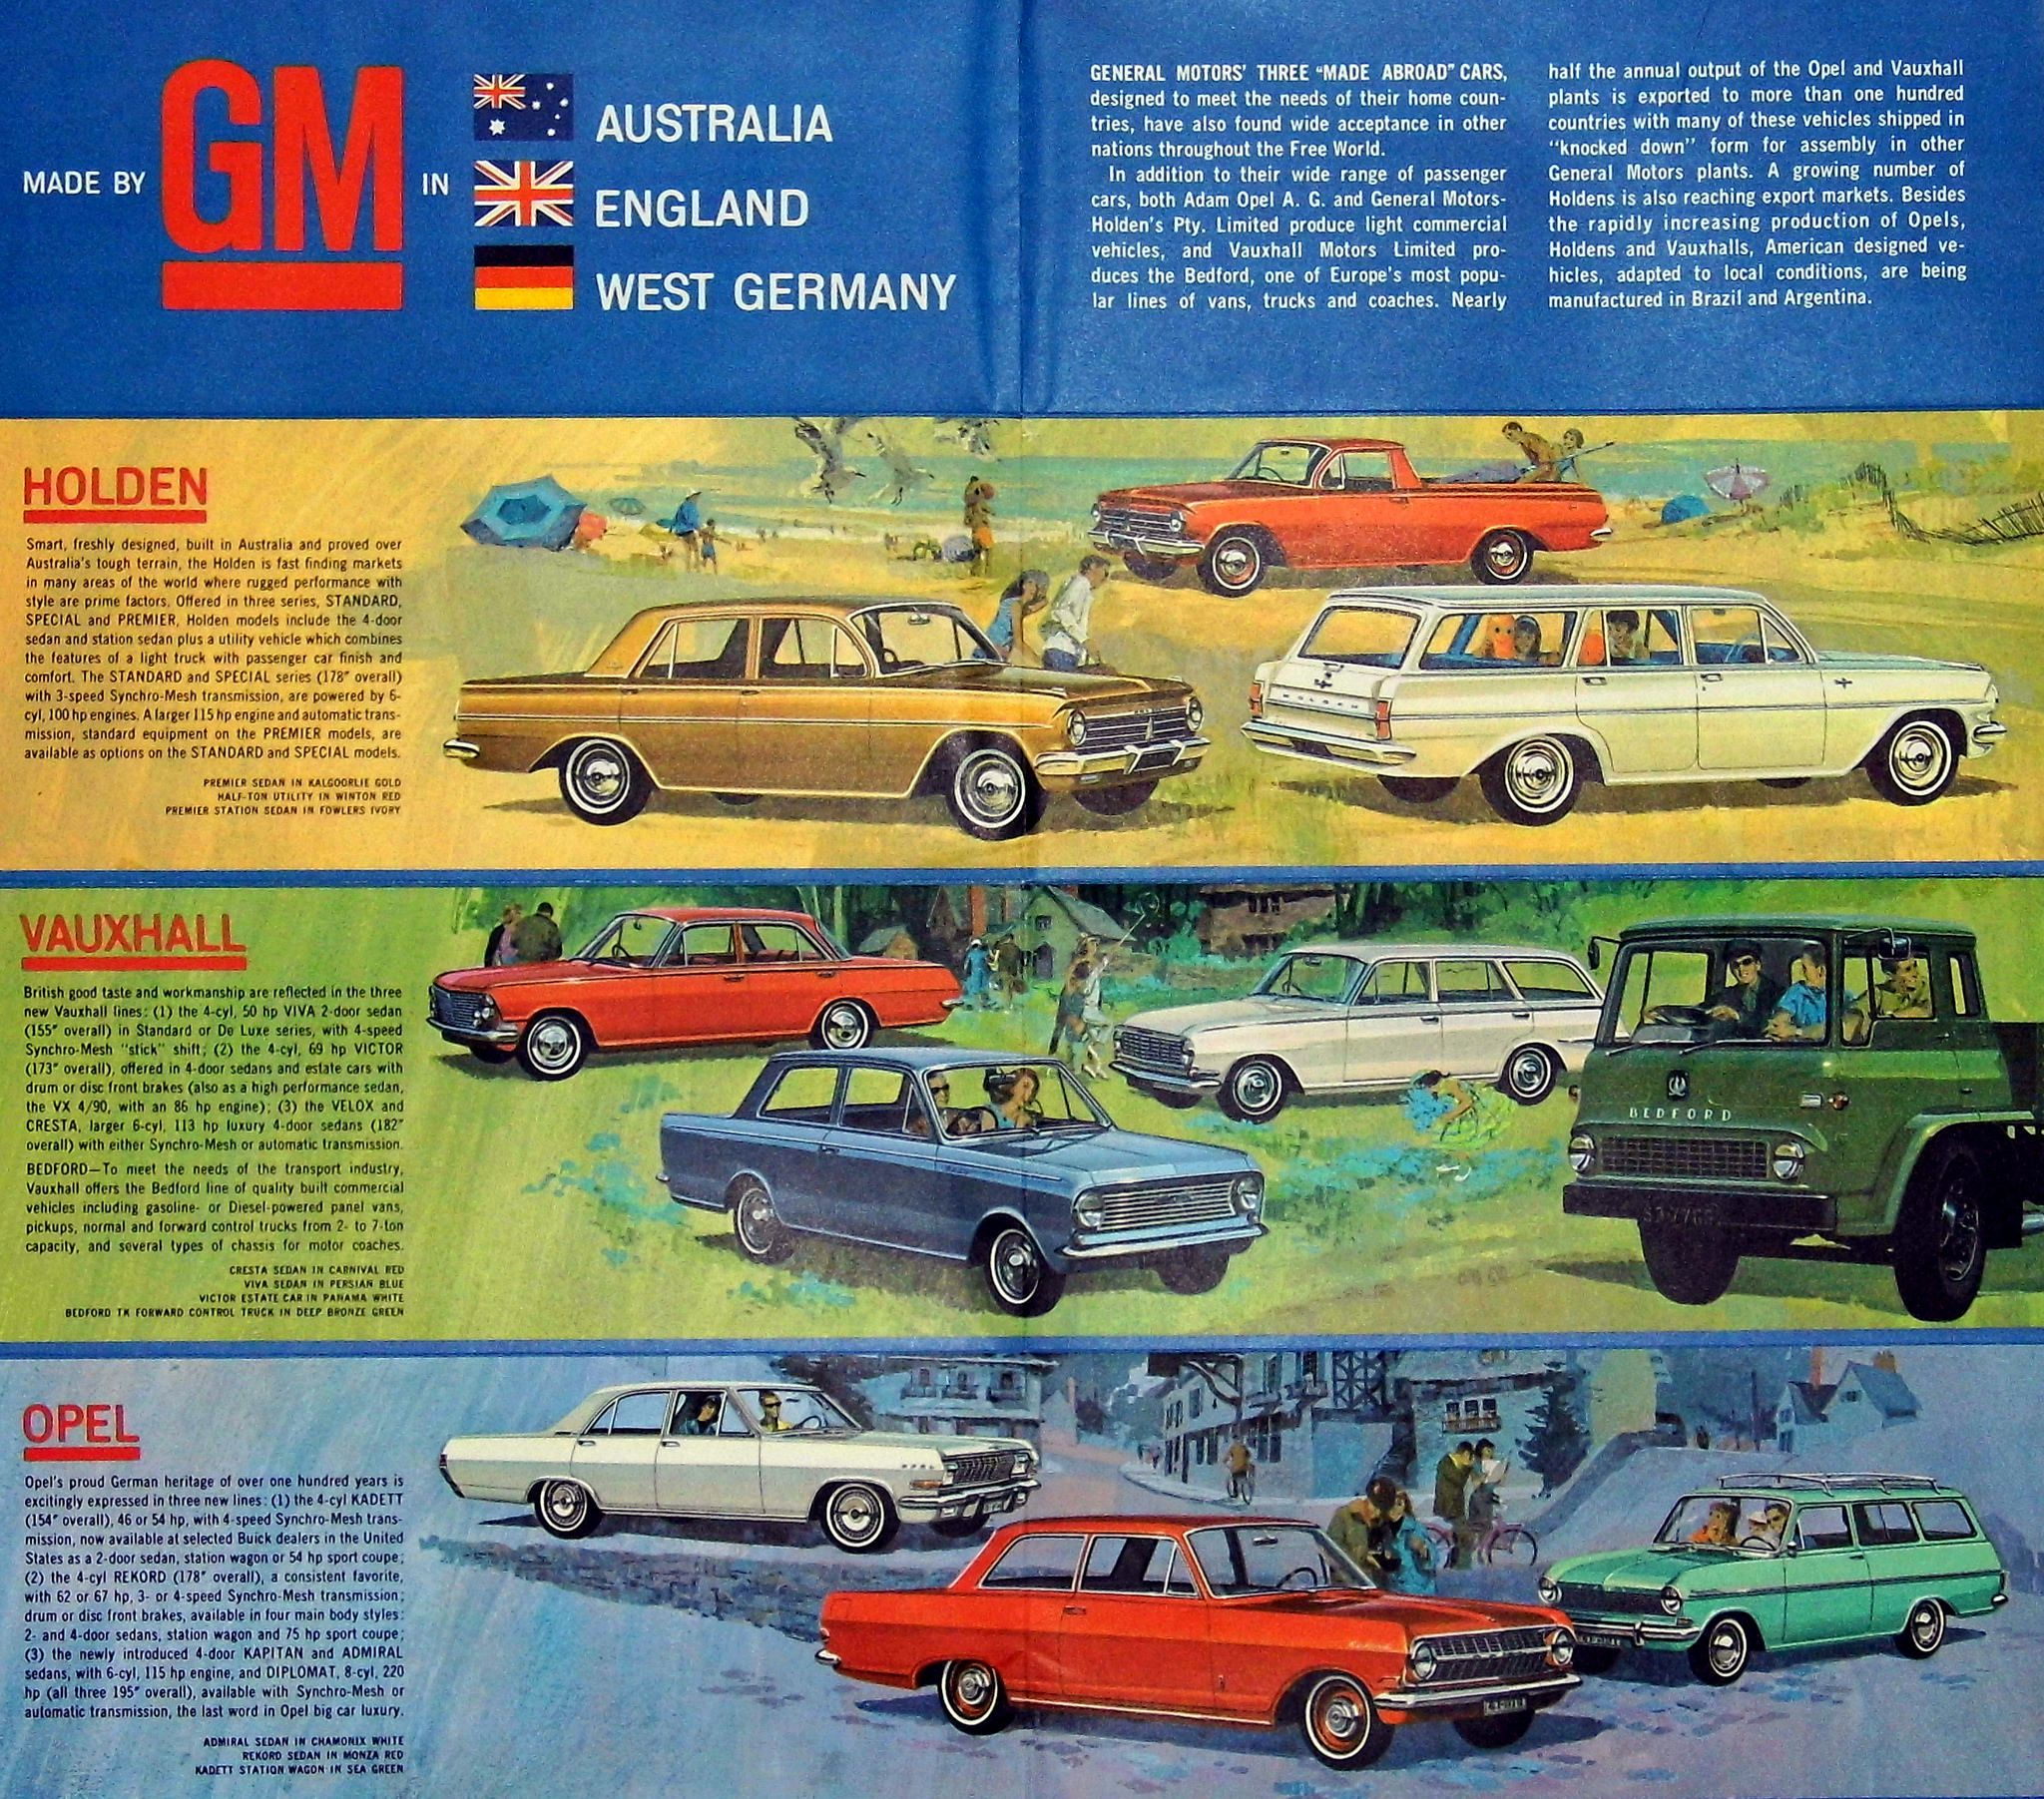 Vintage General Motors Overseas Operations Brochure For Cars Made In Australia Holden England Vauxhall And West Germany Opel Distributed By Gm At The 1 Vauxhall Holden Opel